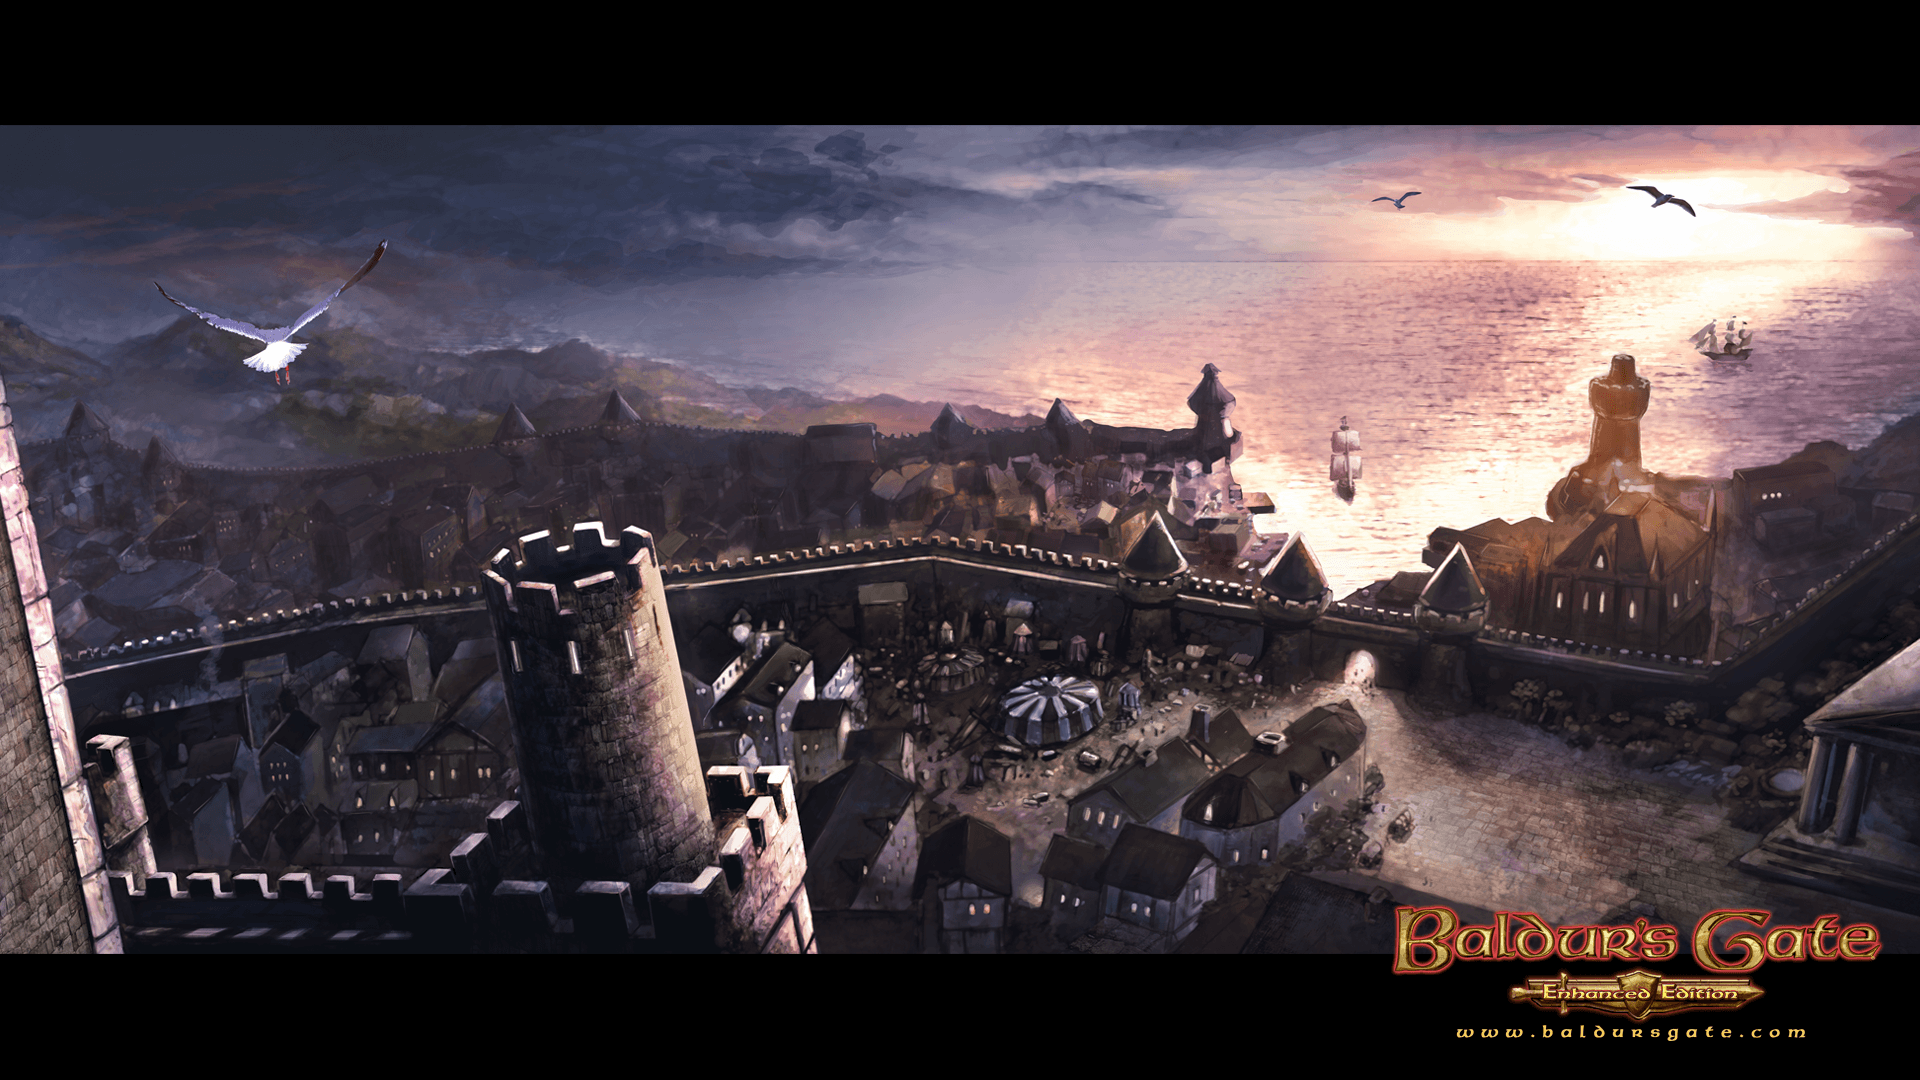 Baldurs Gate Wallpapers, Pictures, Image